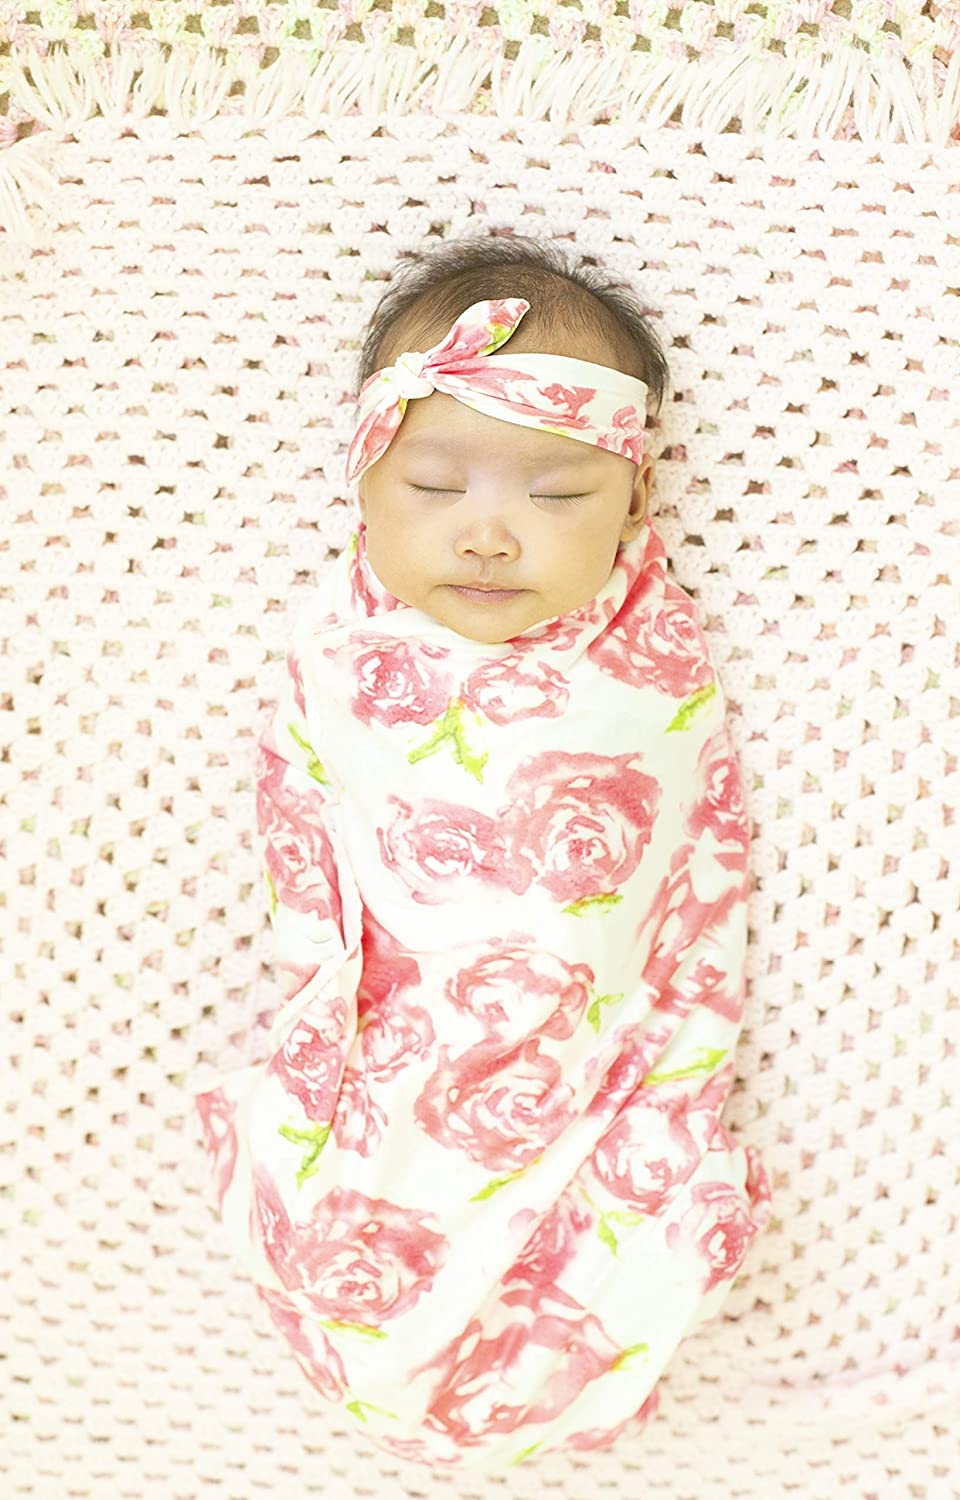 Newborn Receiving Swaddle Wrap Big Blanket and Headband Set for Baby Shower Girl Gift